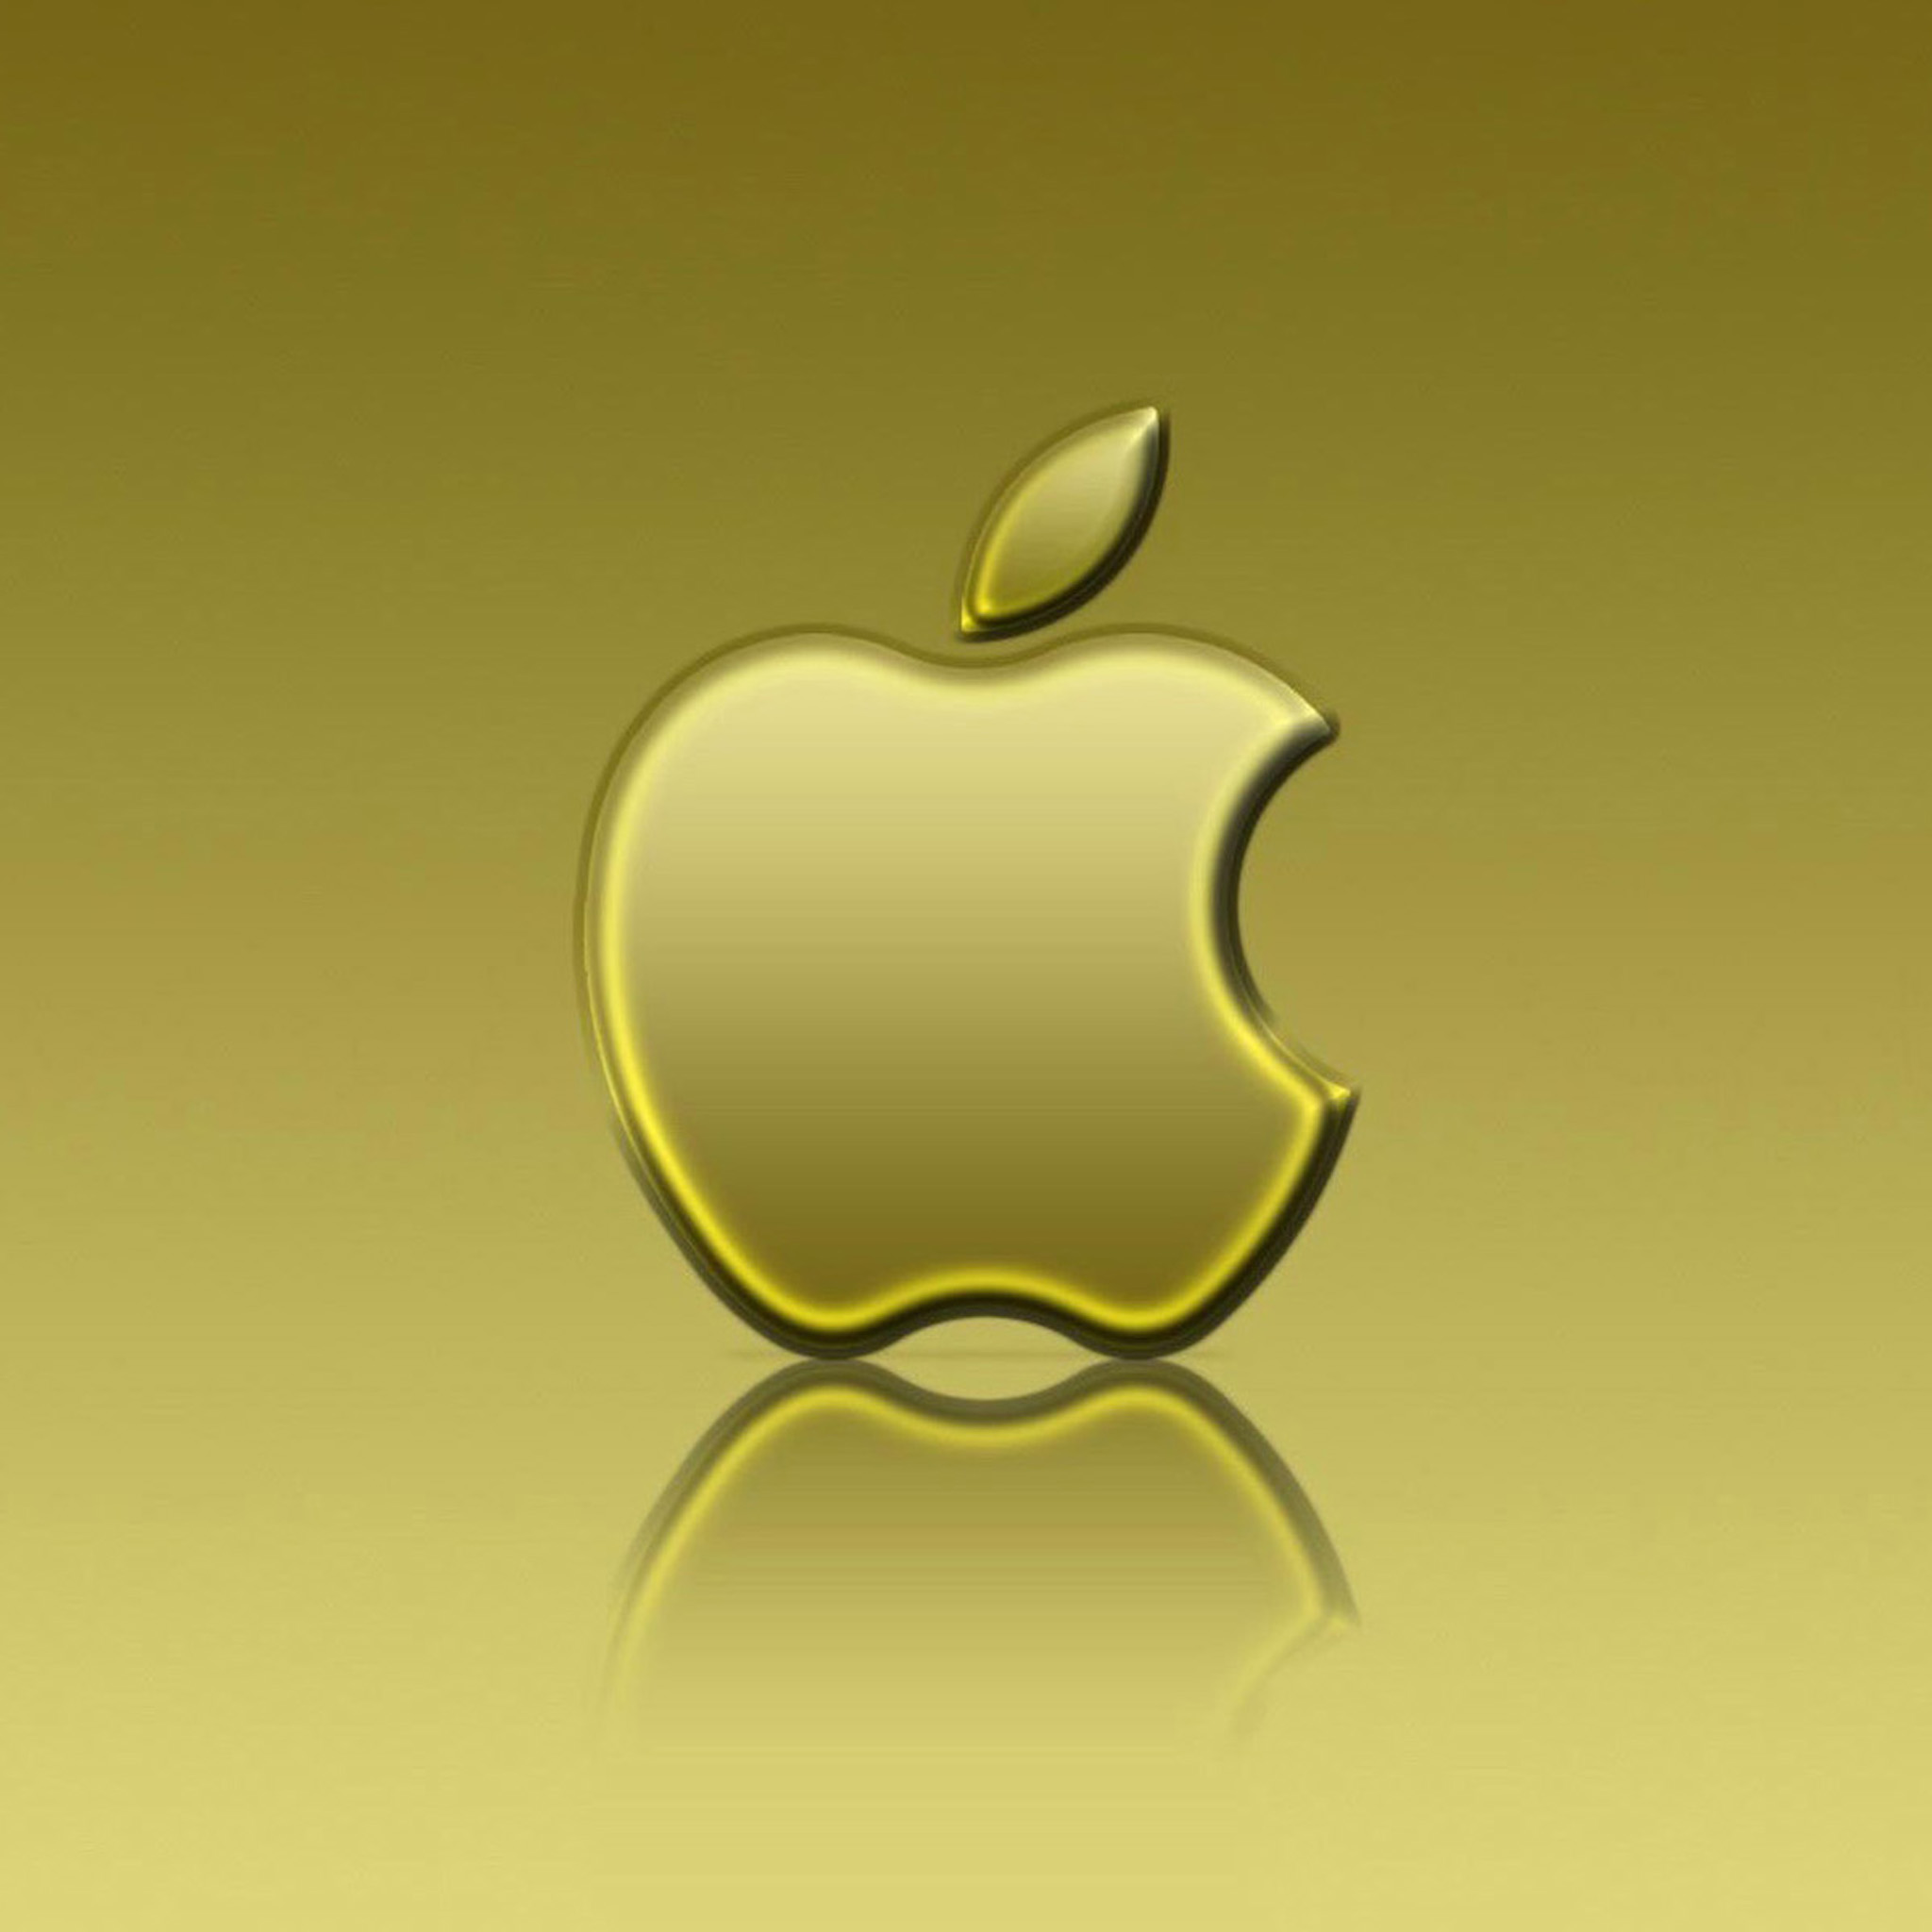 Golden Apple iPad Air 2 Wallpapers iPad Air 2 Wallpapers 2048x2048